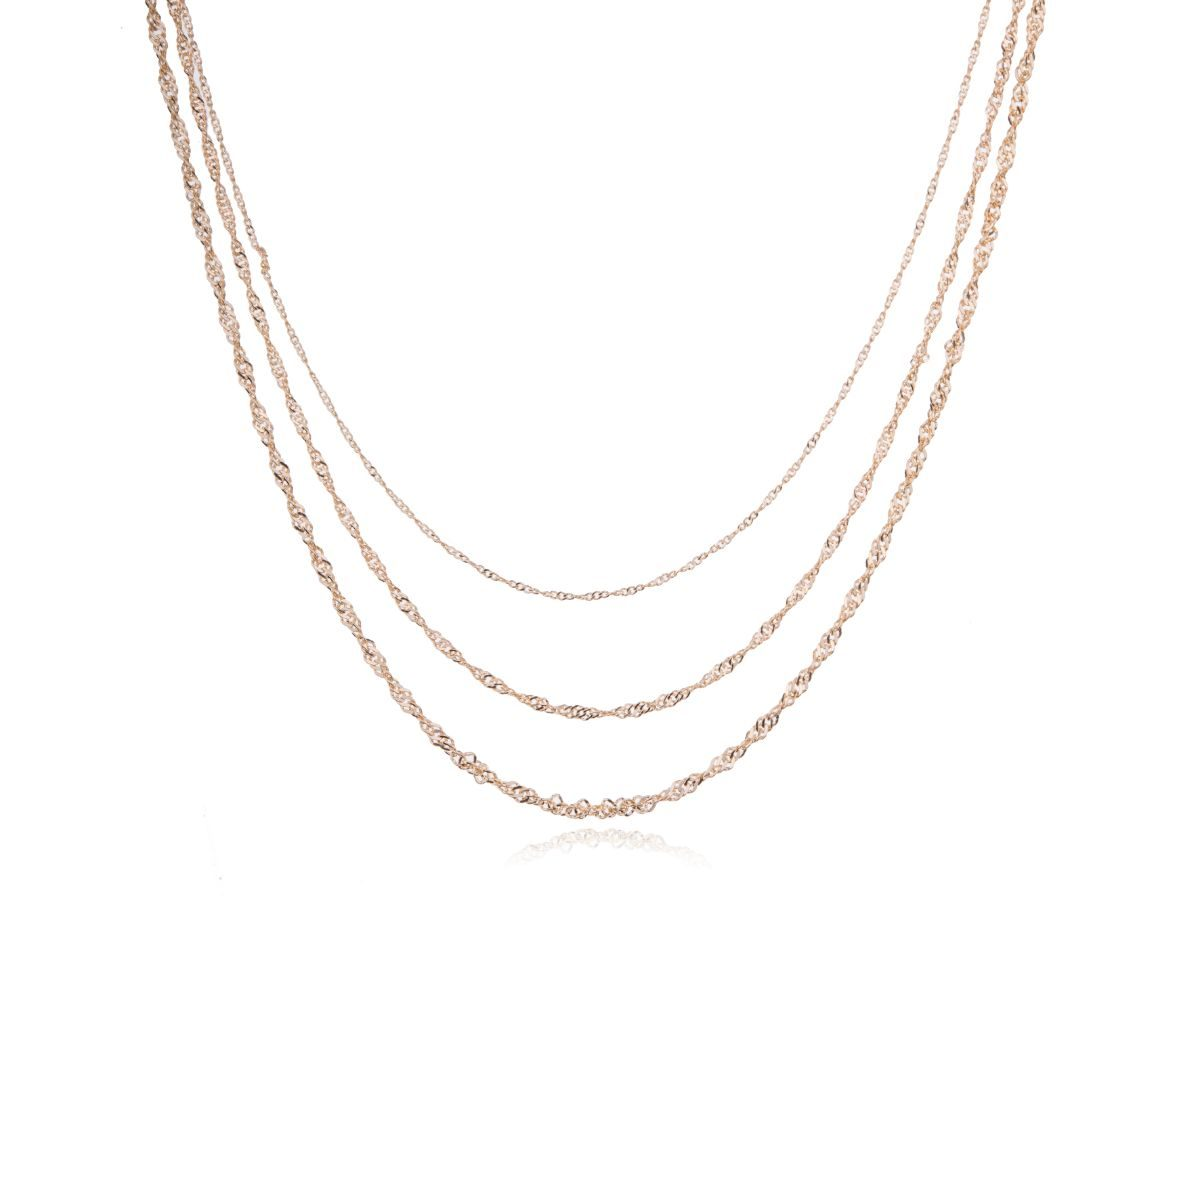 Venice short necklace with three chains at different heights and of different thickness, gold plated